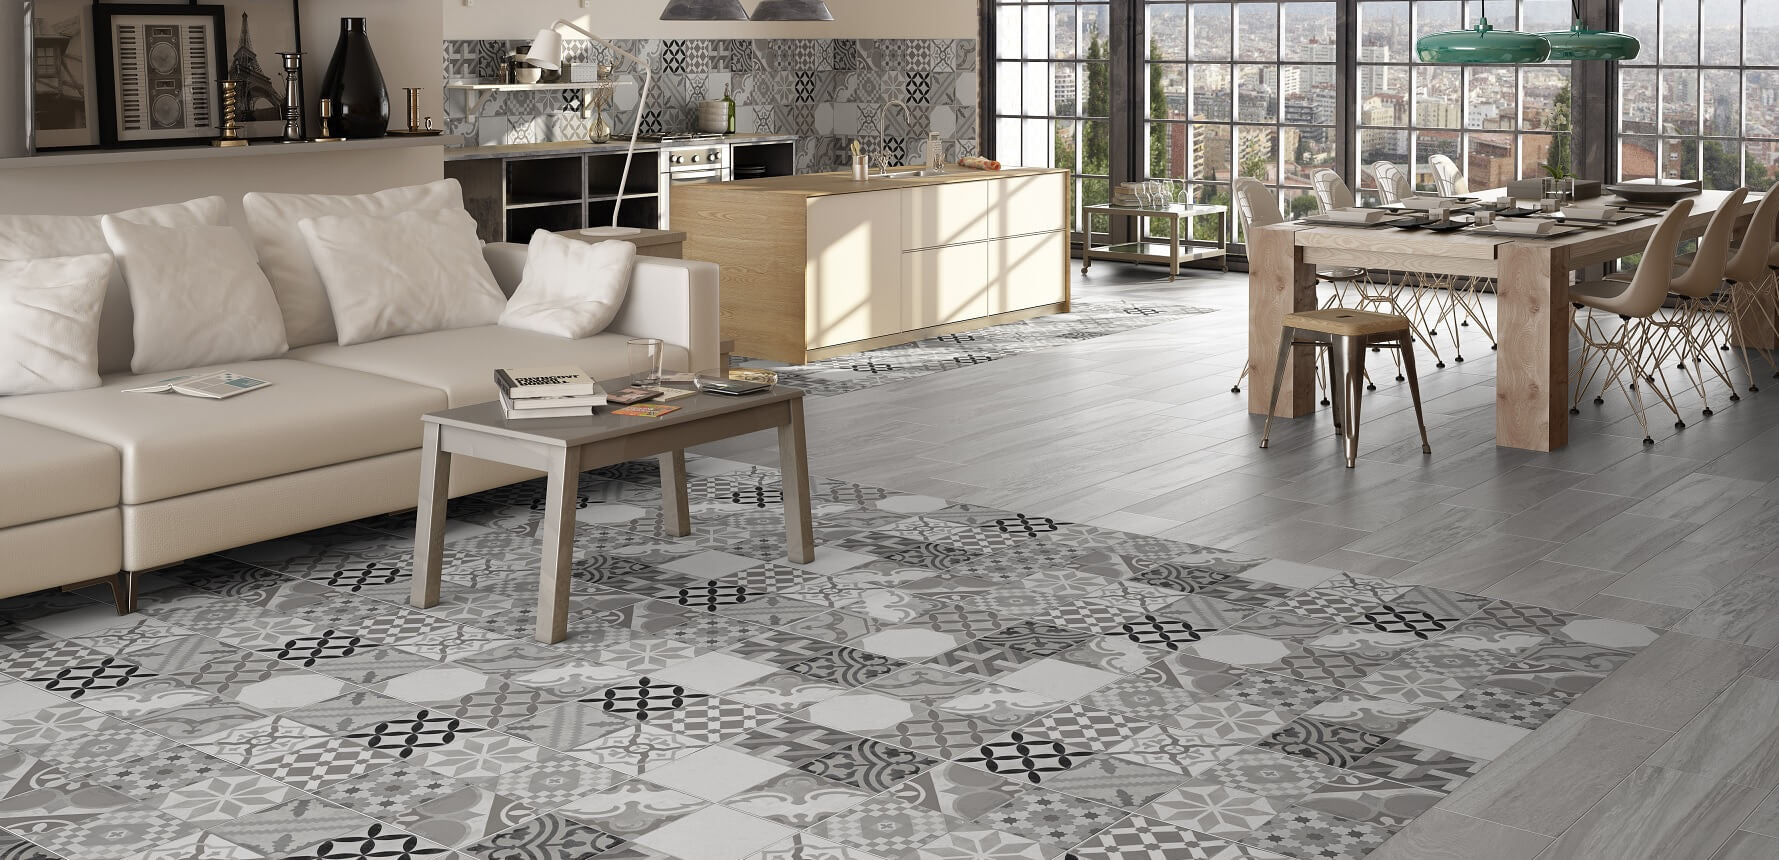 ... Moments Grey Floor Tiles In Stunning Loft Apartment With View Of City  ... Part 69